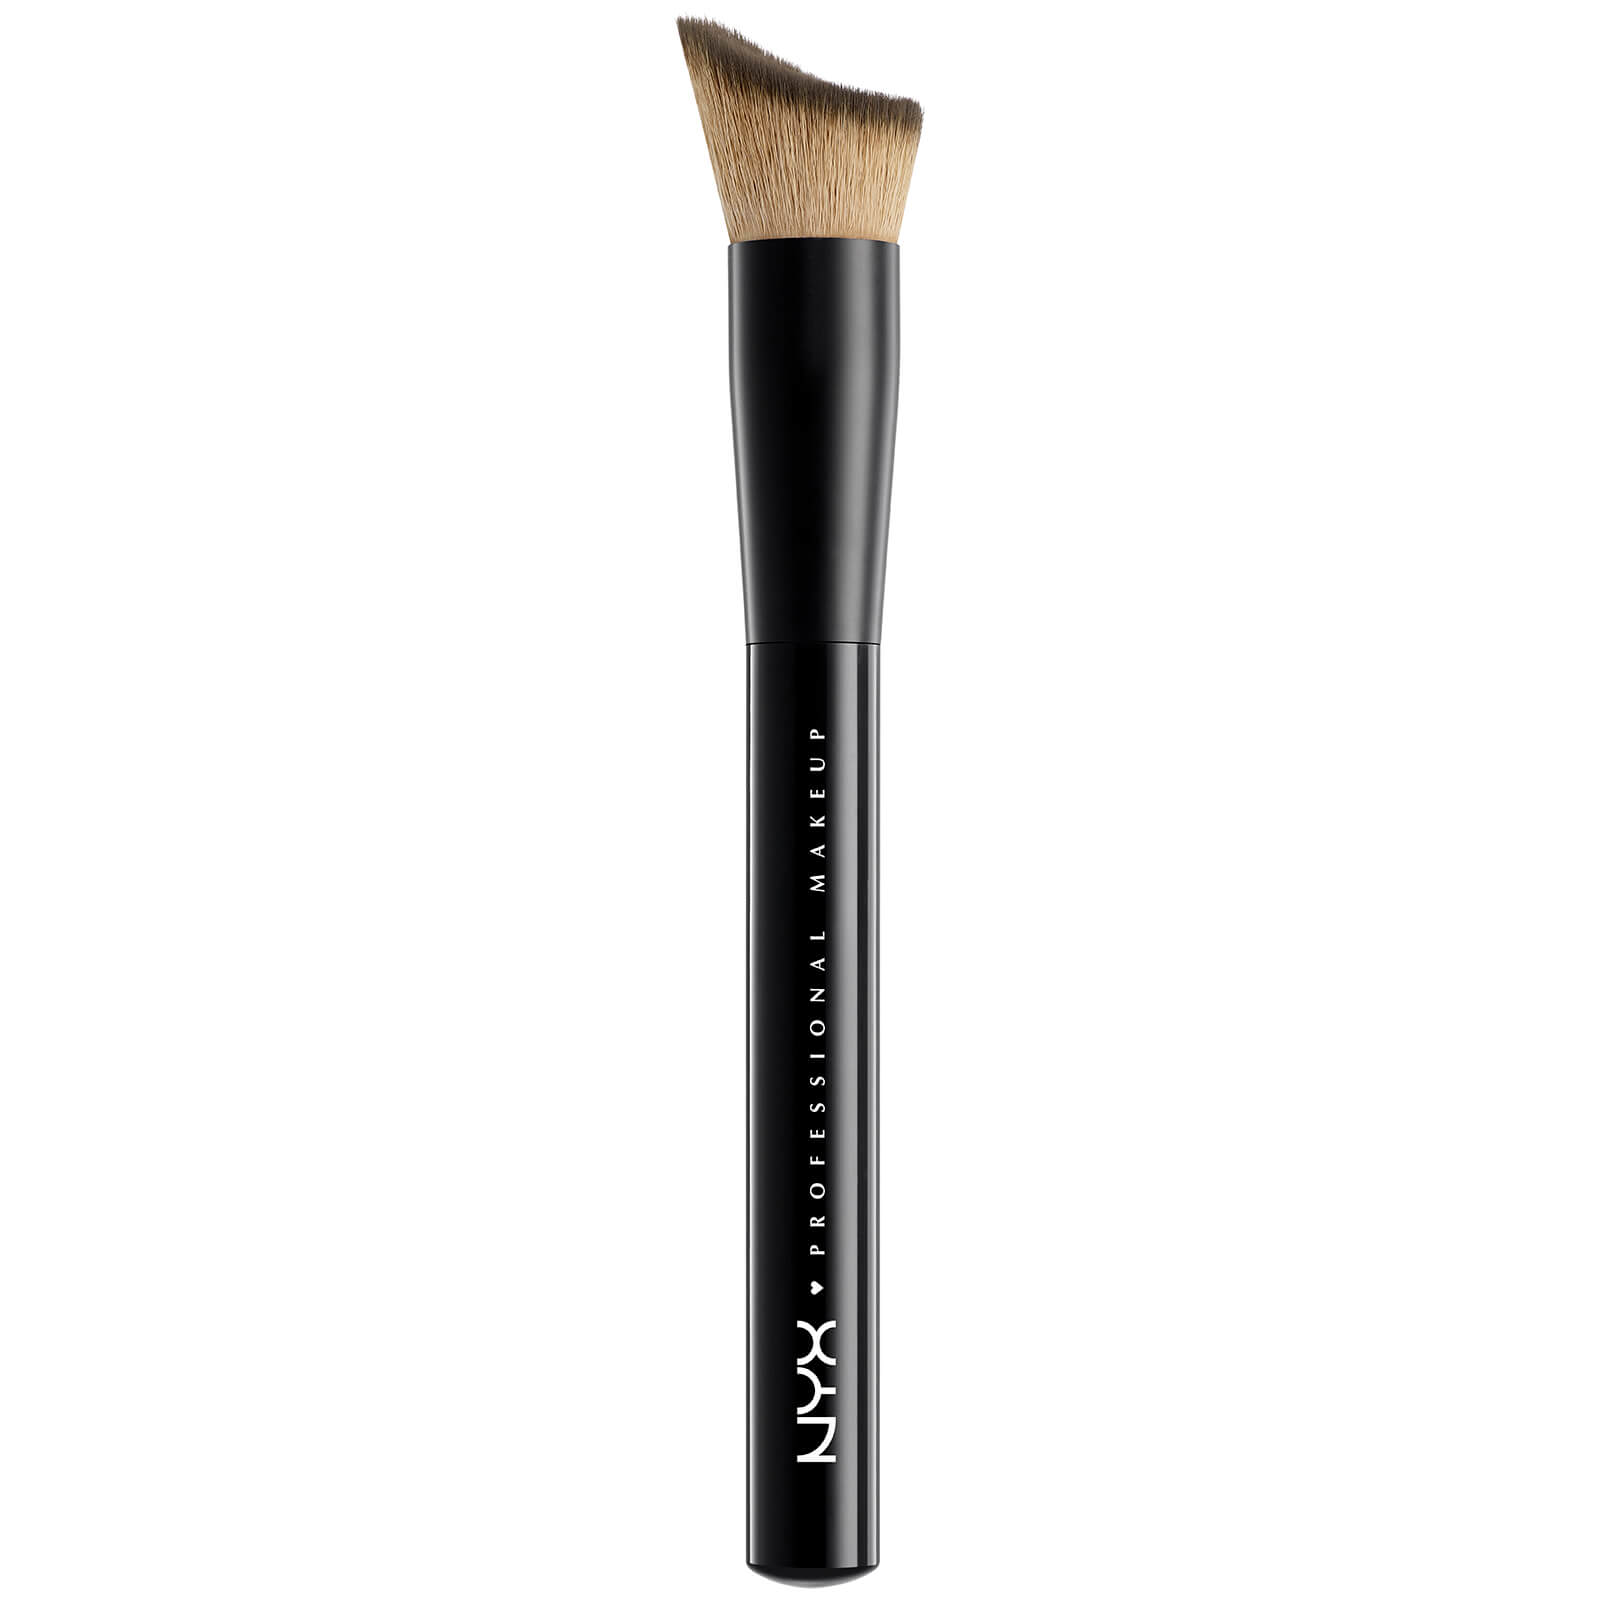 NYX Professional Makeup Total Control Foundation Brush